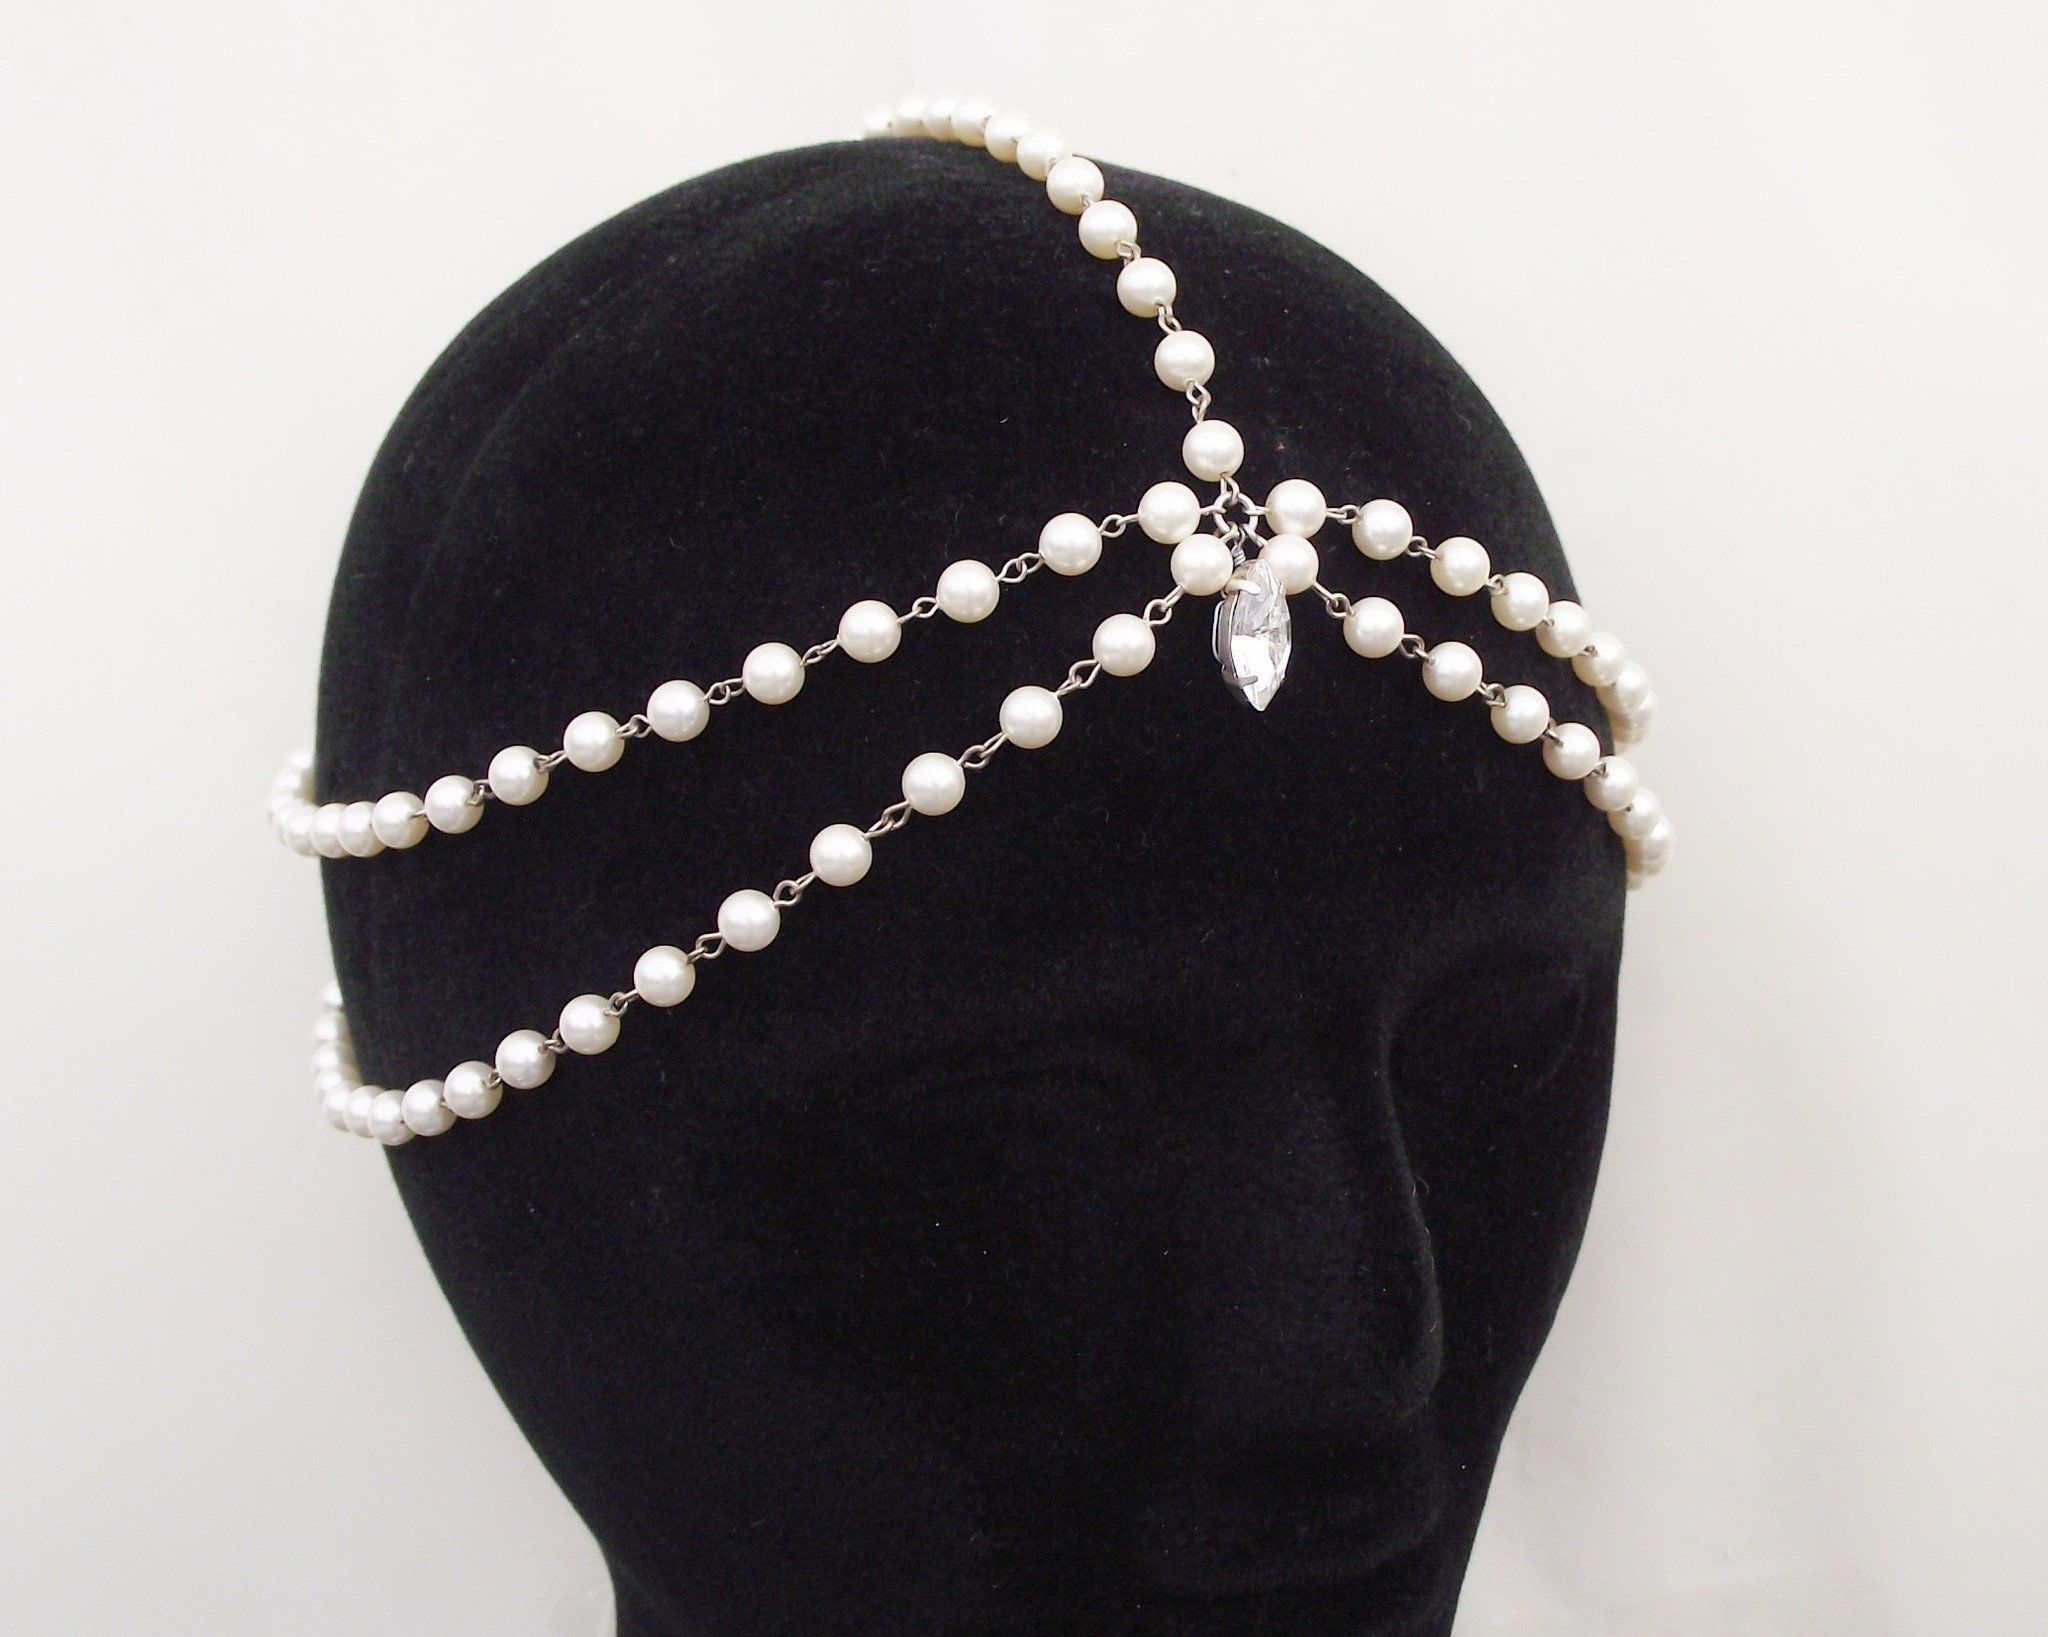 Pearl/Crystal Hair Drapes - Boho Style Draping Hair Pearls And Rhinestones, Suzie